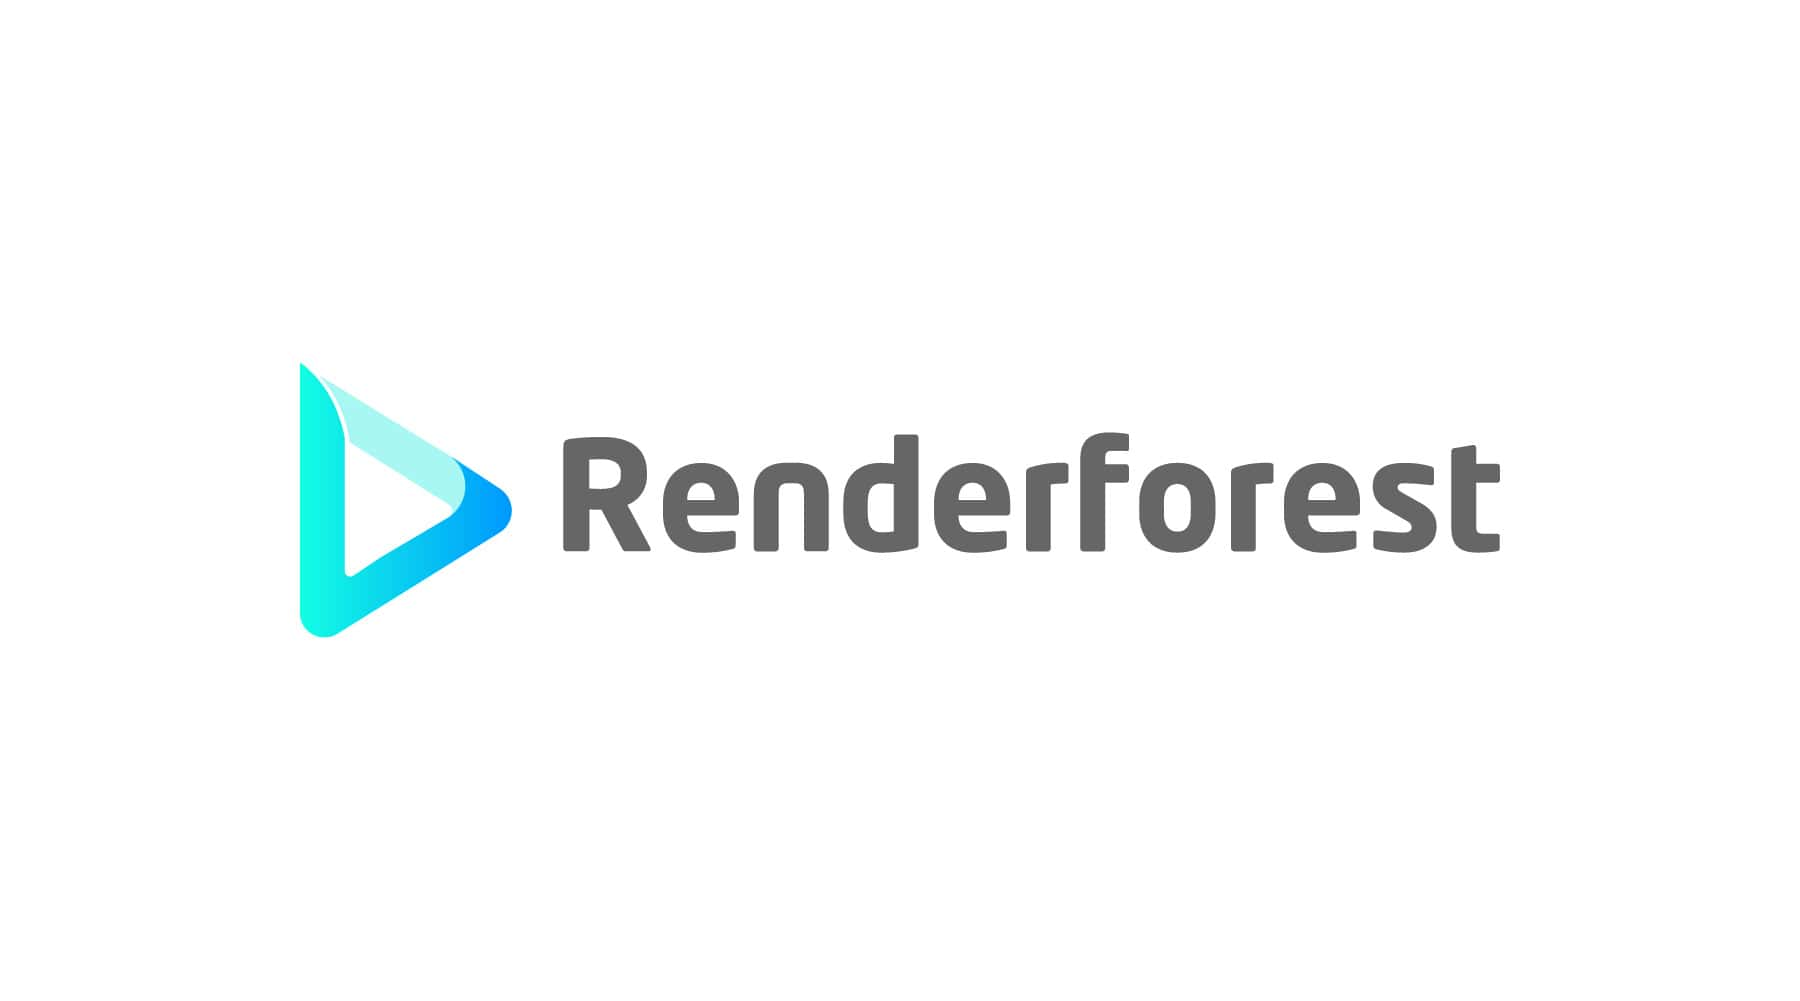 Renderforest.jpg